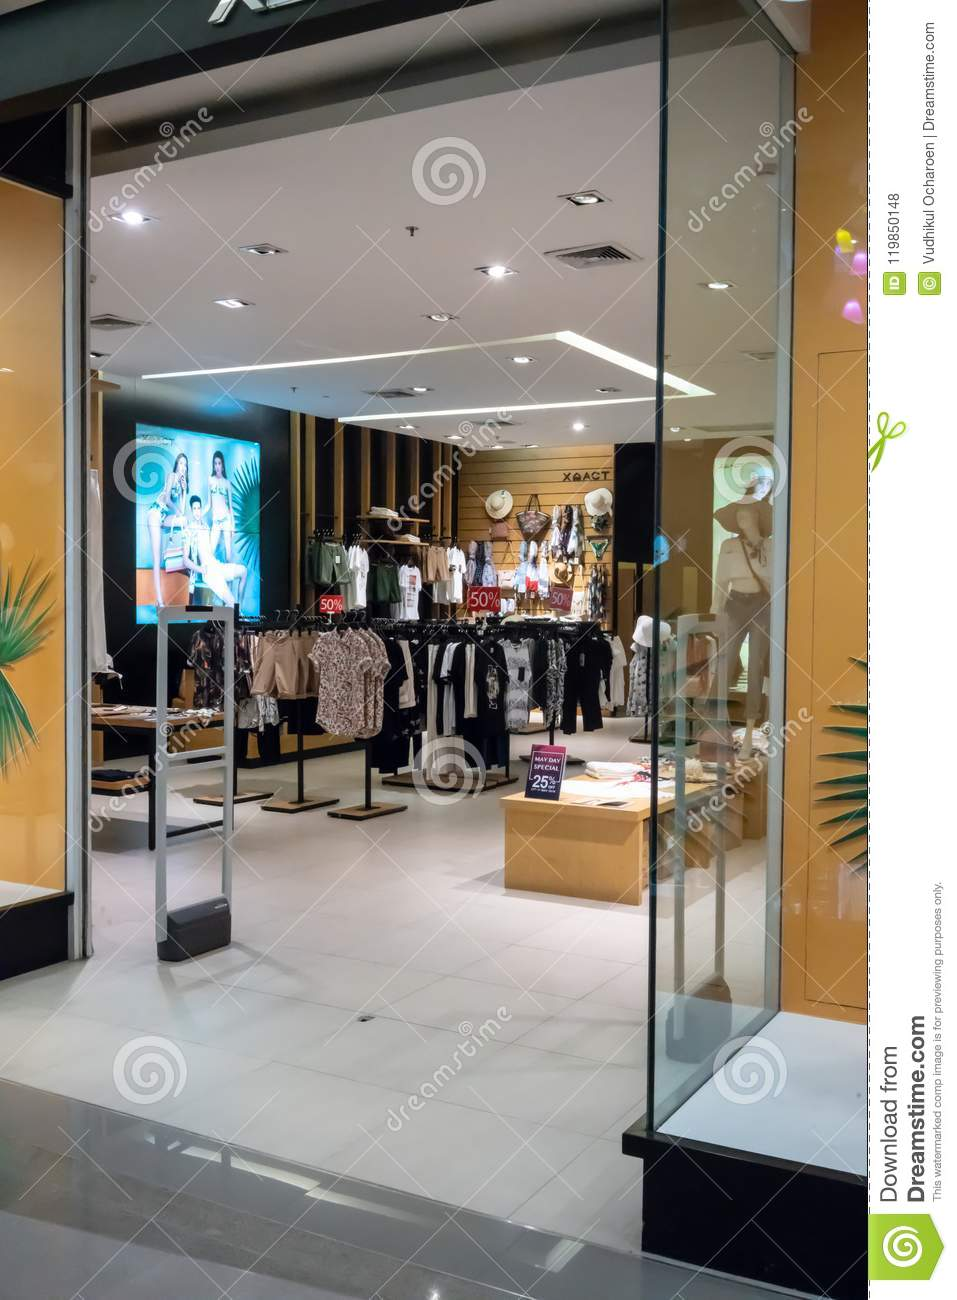 Xact Shop At Central Rama 9, Bangkok, Thailand, Apr 30, 2018